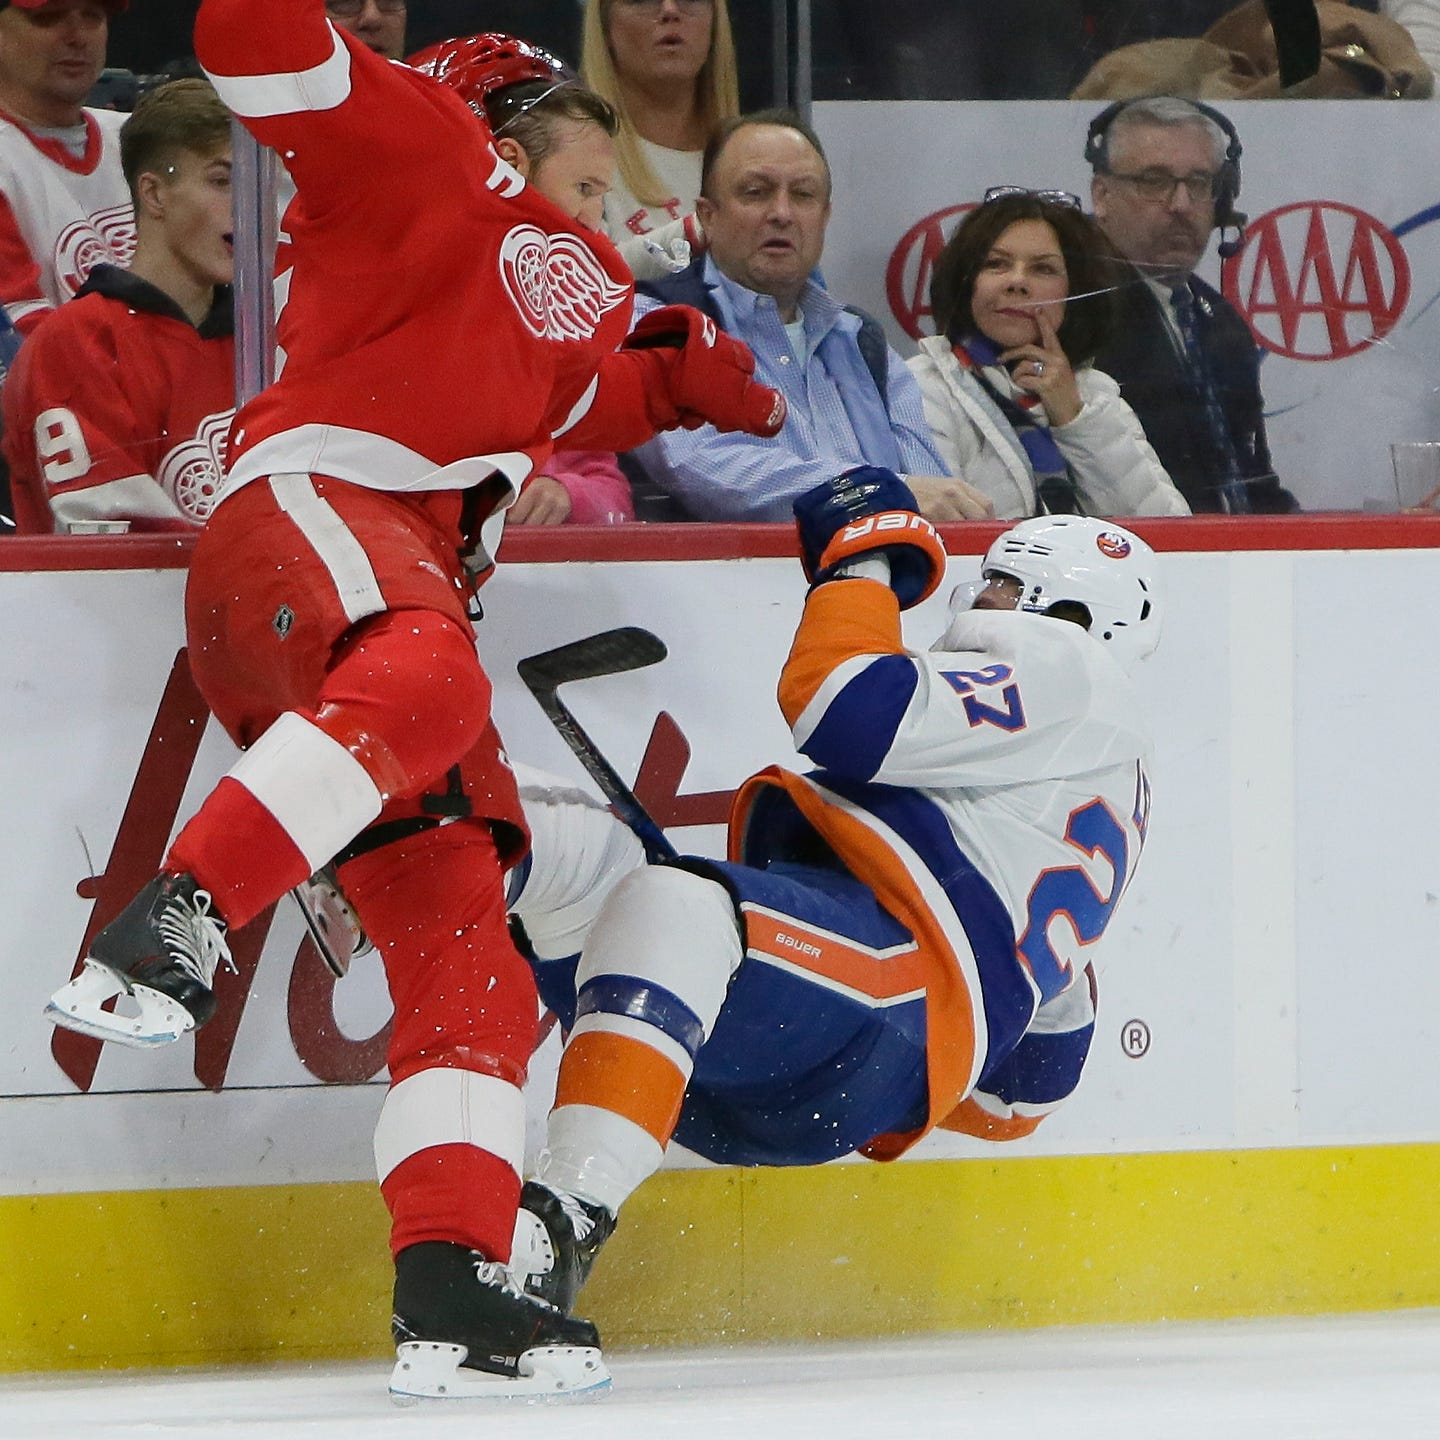 Kronwall turns back the clock with his play, devastating hit